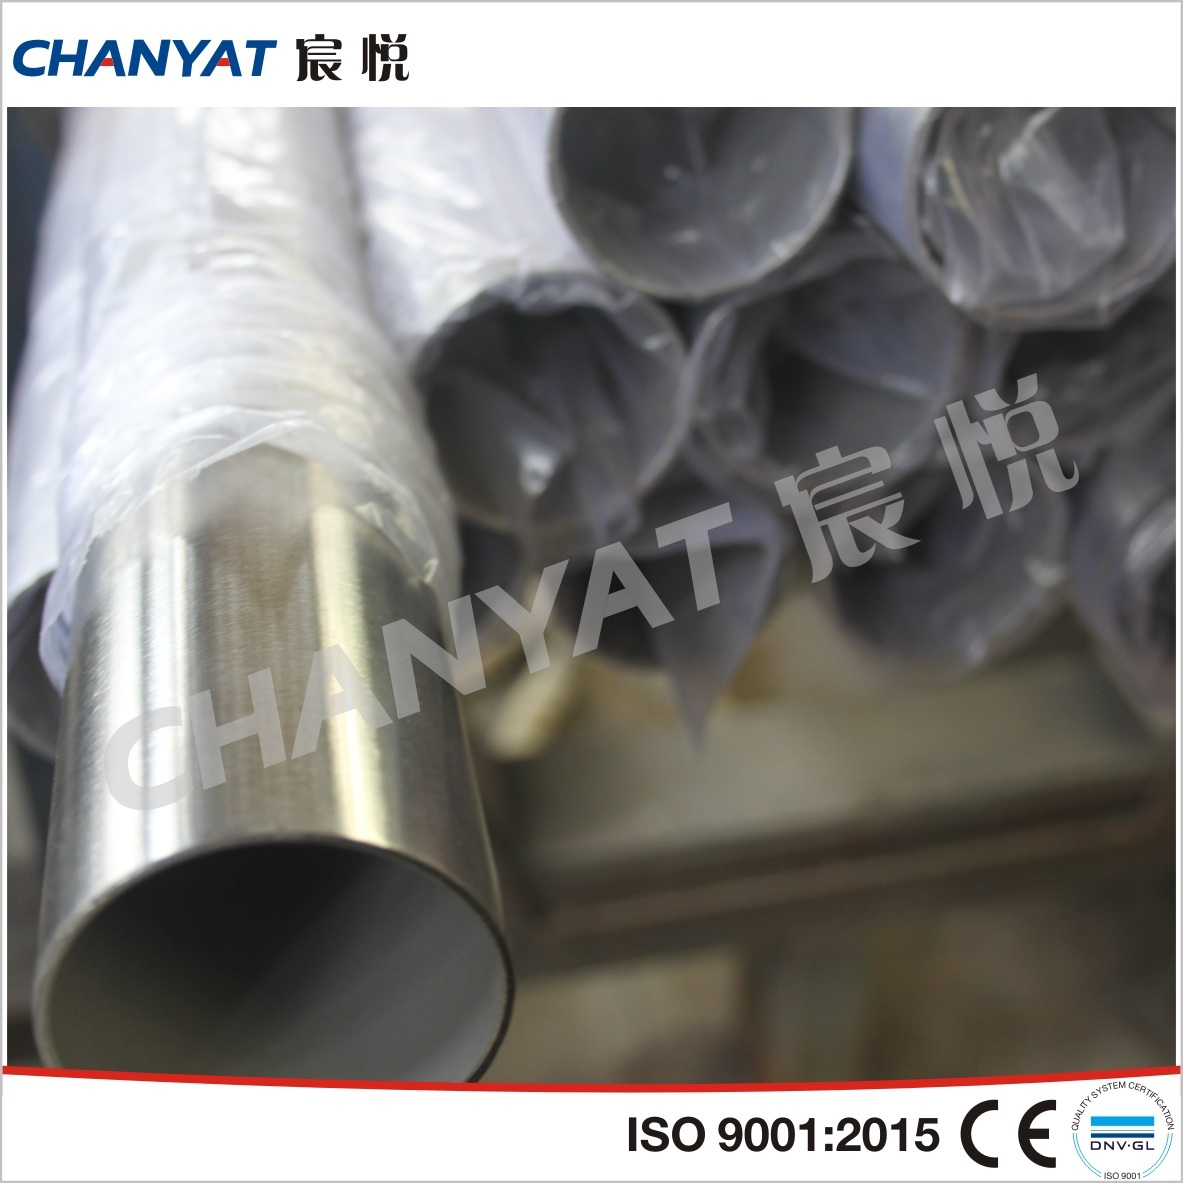 Seamless Nickel Alloy Pipe and Tube (Monel 400, Inconel 600, Incoloy 800, Incoloy 825, Inconel 625, Hastelloy C276)